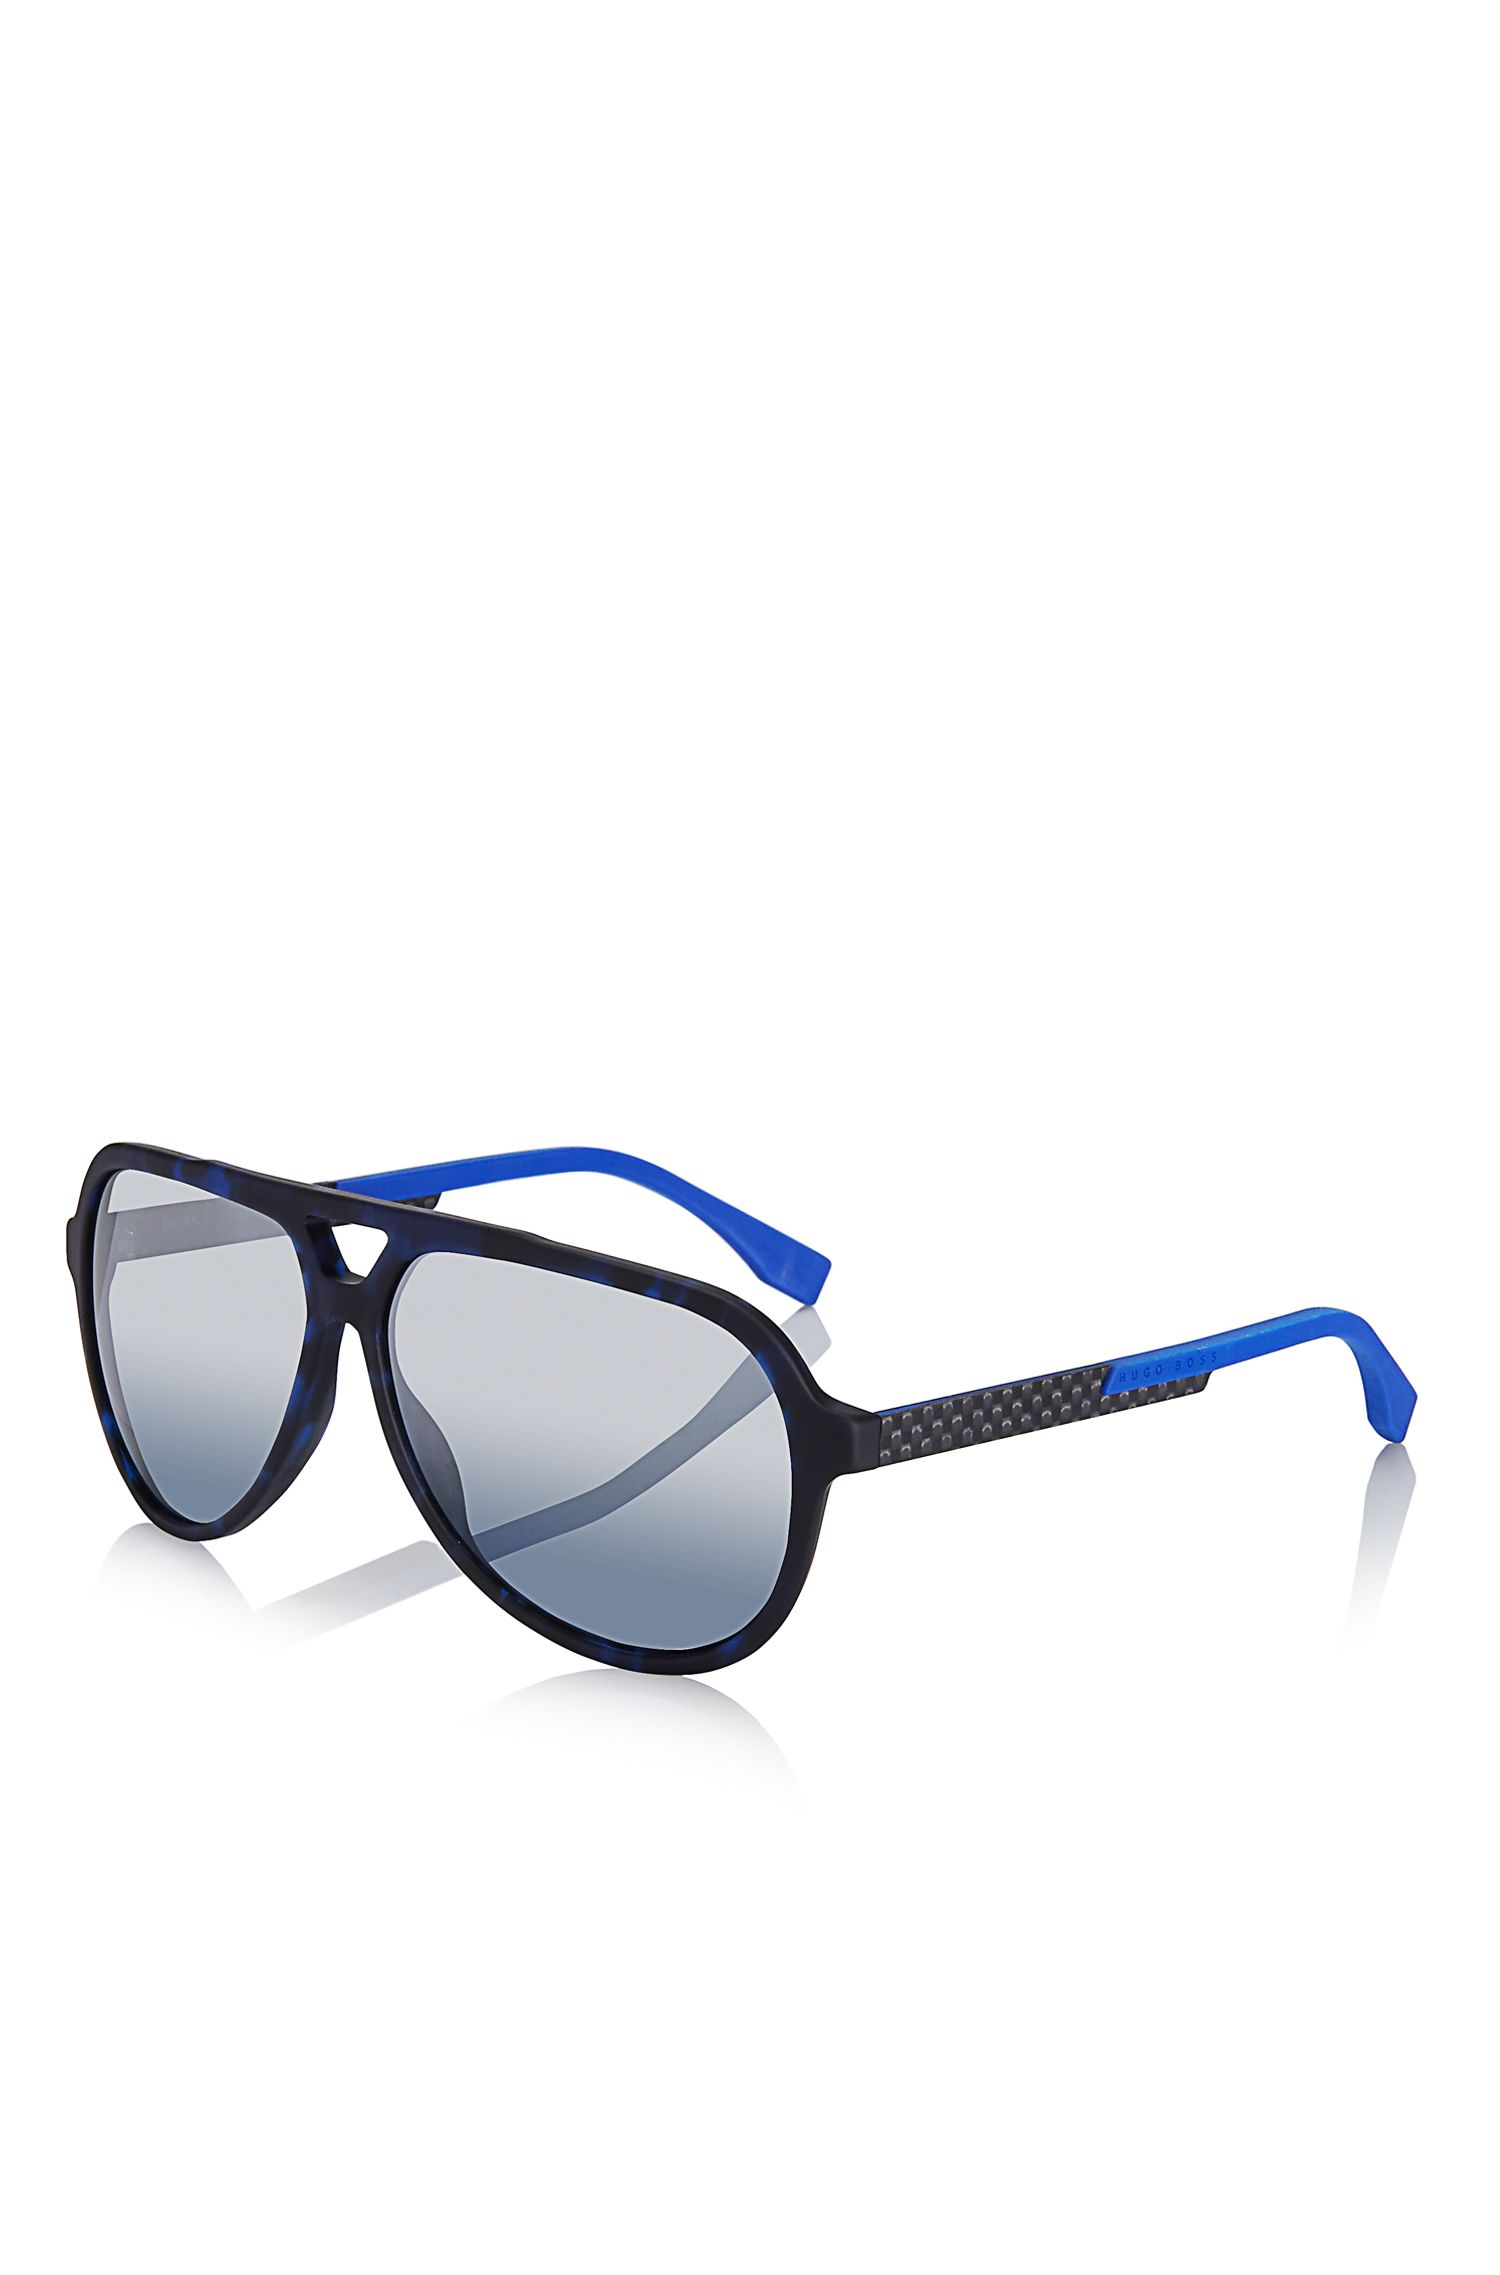 Mirror Lens Carbon Fiber Aviator Sunglasses | BOSS 0731S